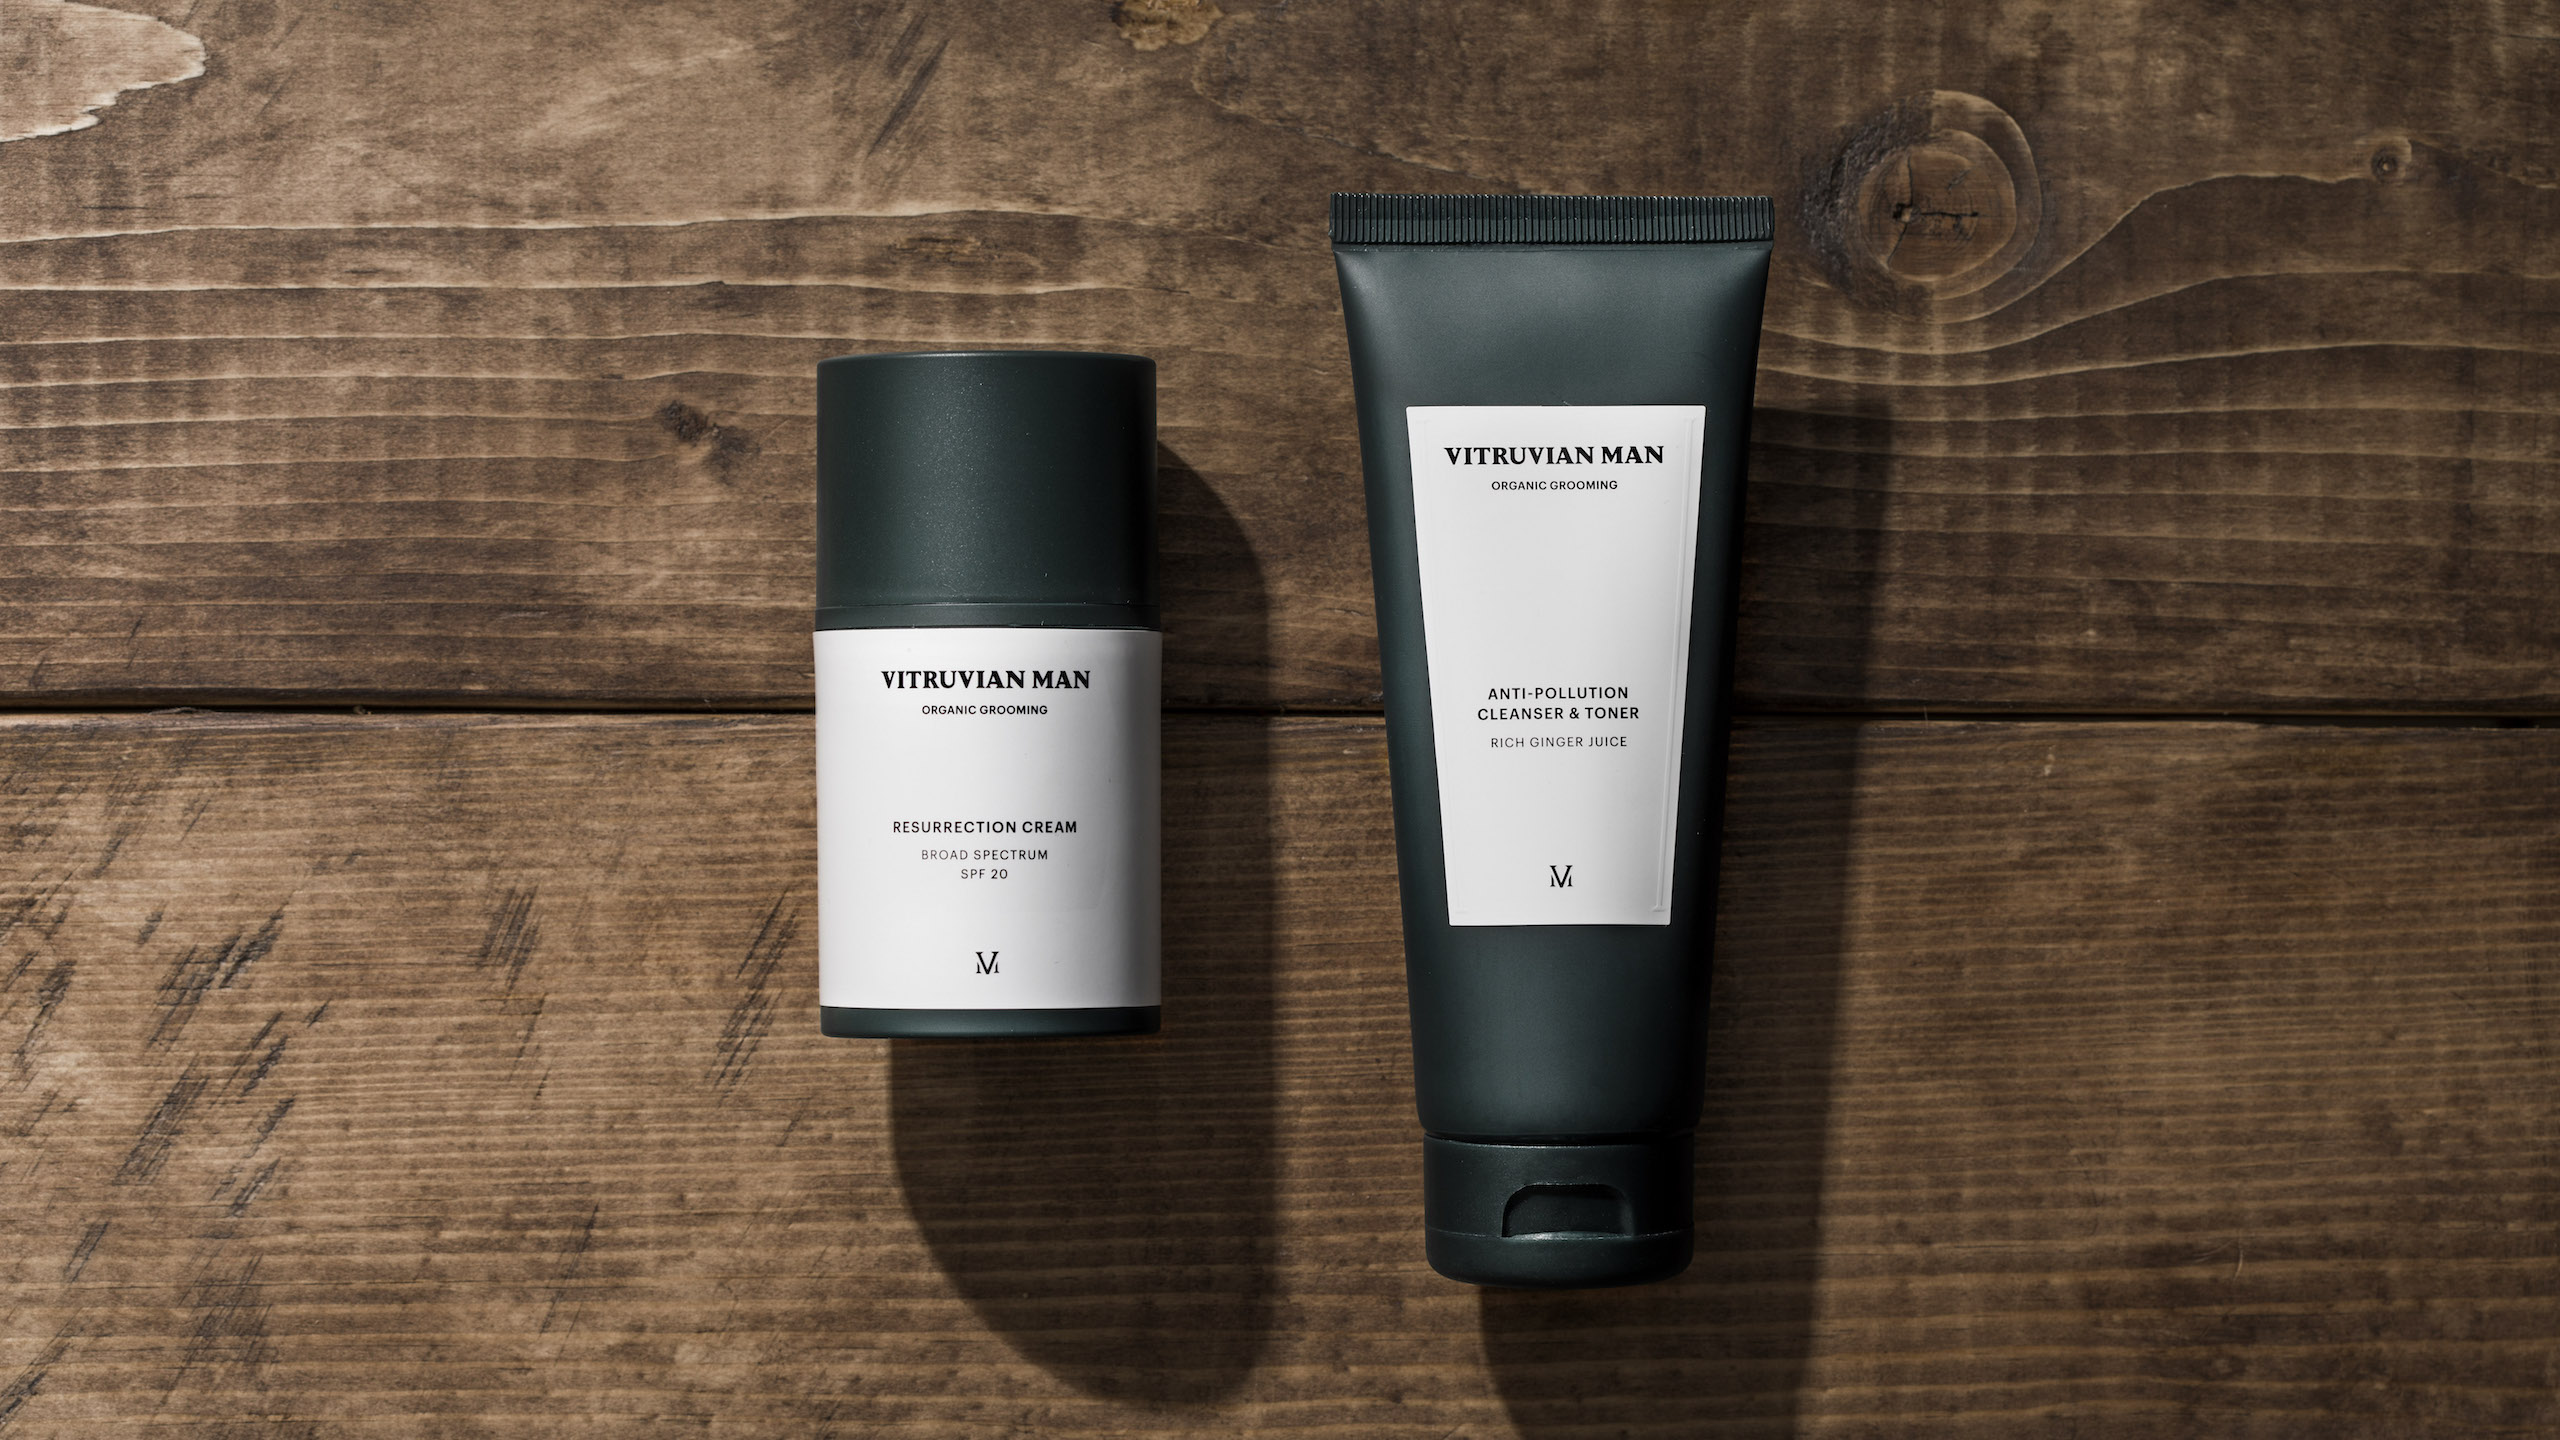 Introducing Vitruvian Man: Organic grooming solutions for the modern gent